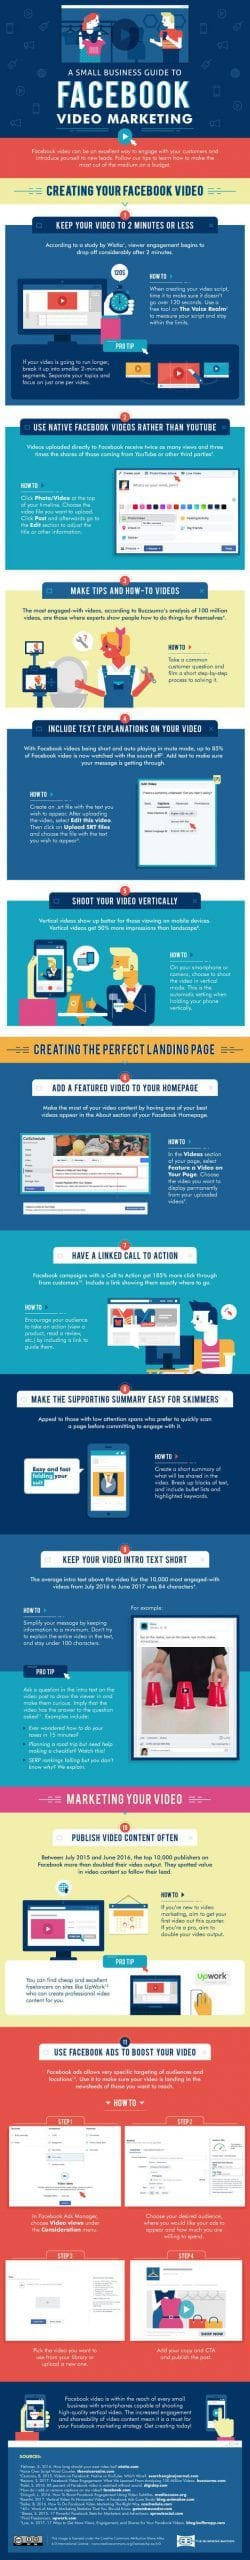 171107-infographic-small-business-guide-to-facebook-video-marketing-small-2054752